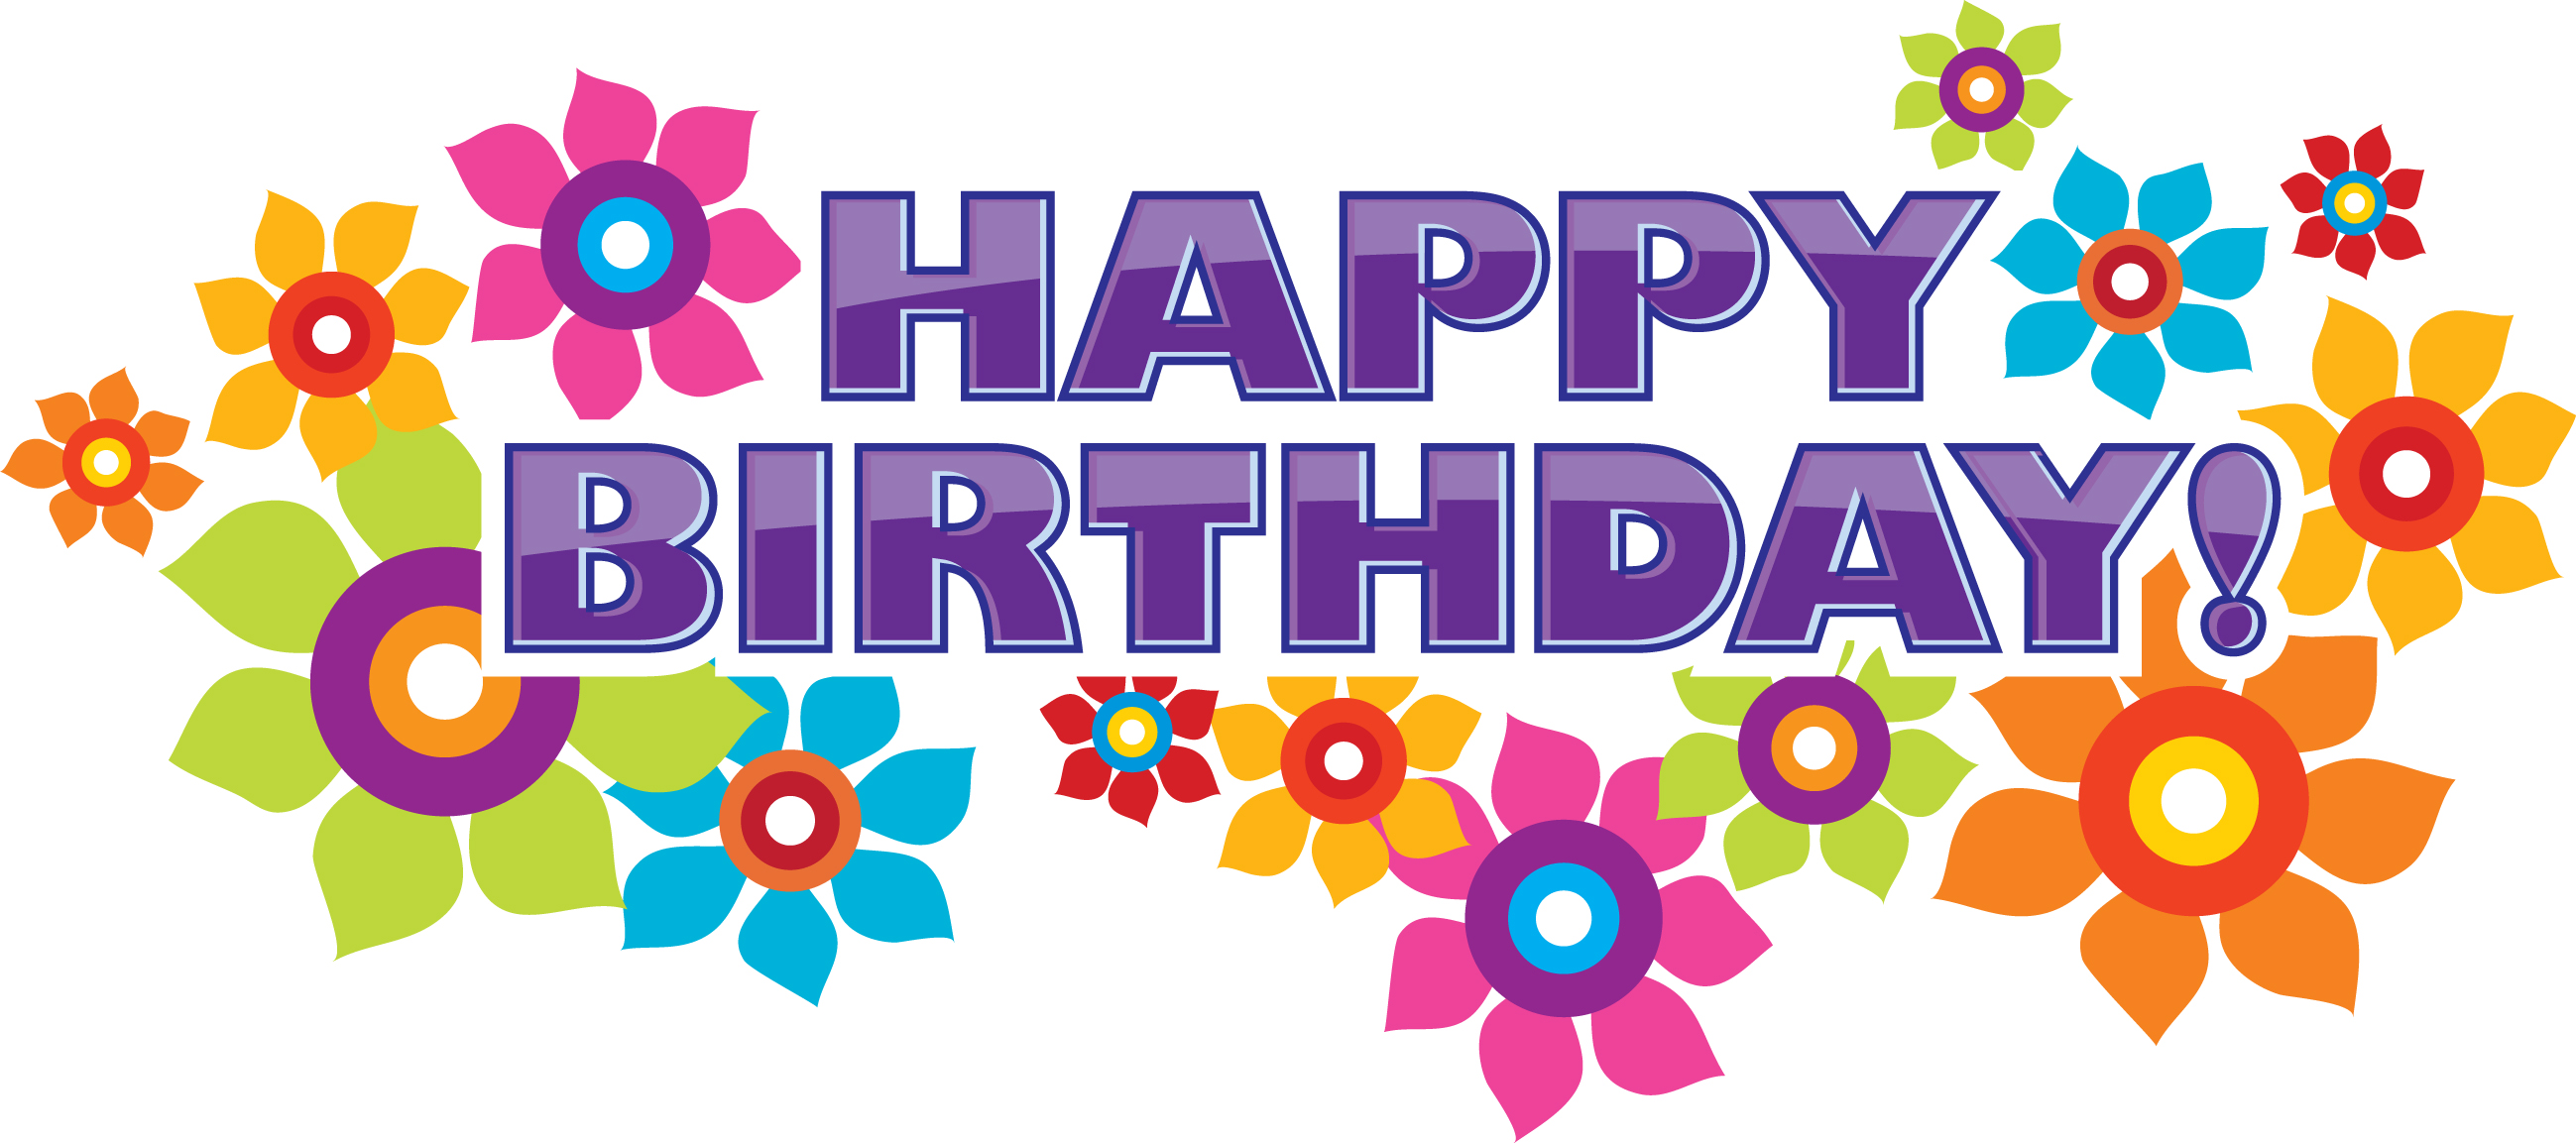 free happy birthday clip art for facebook ; free-vector-happy-birthday-elements-04-vector_004922_happy_birthday_4